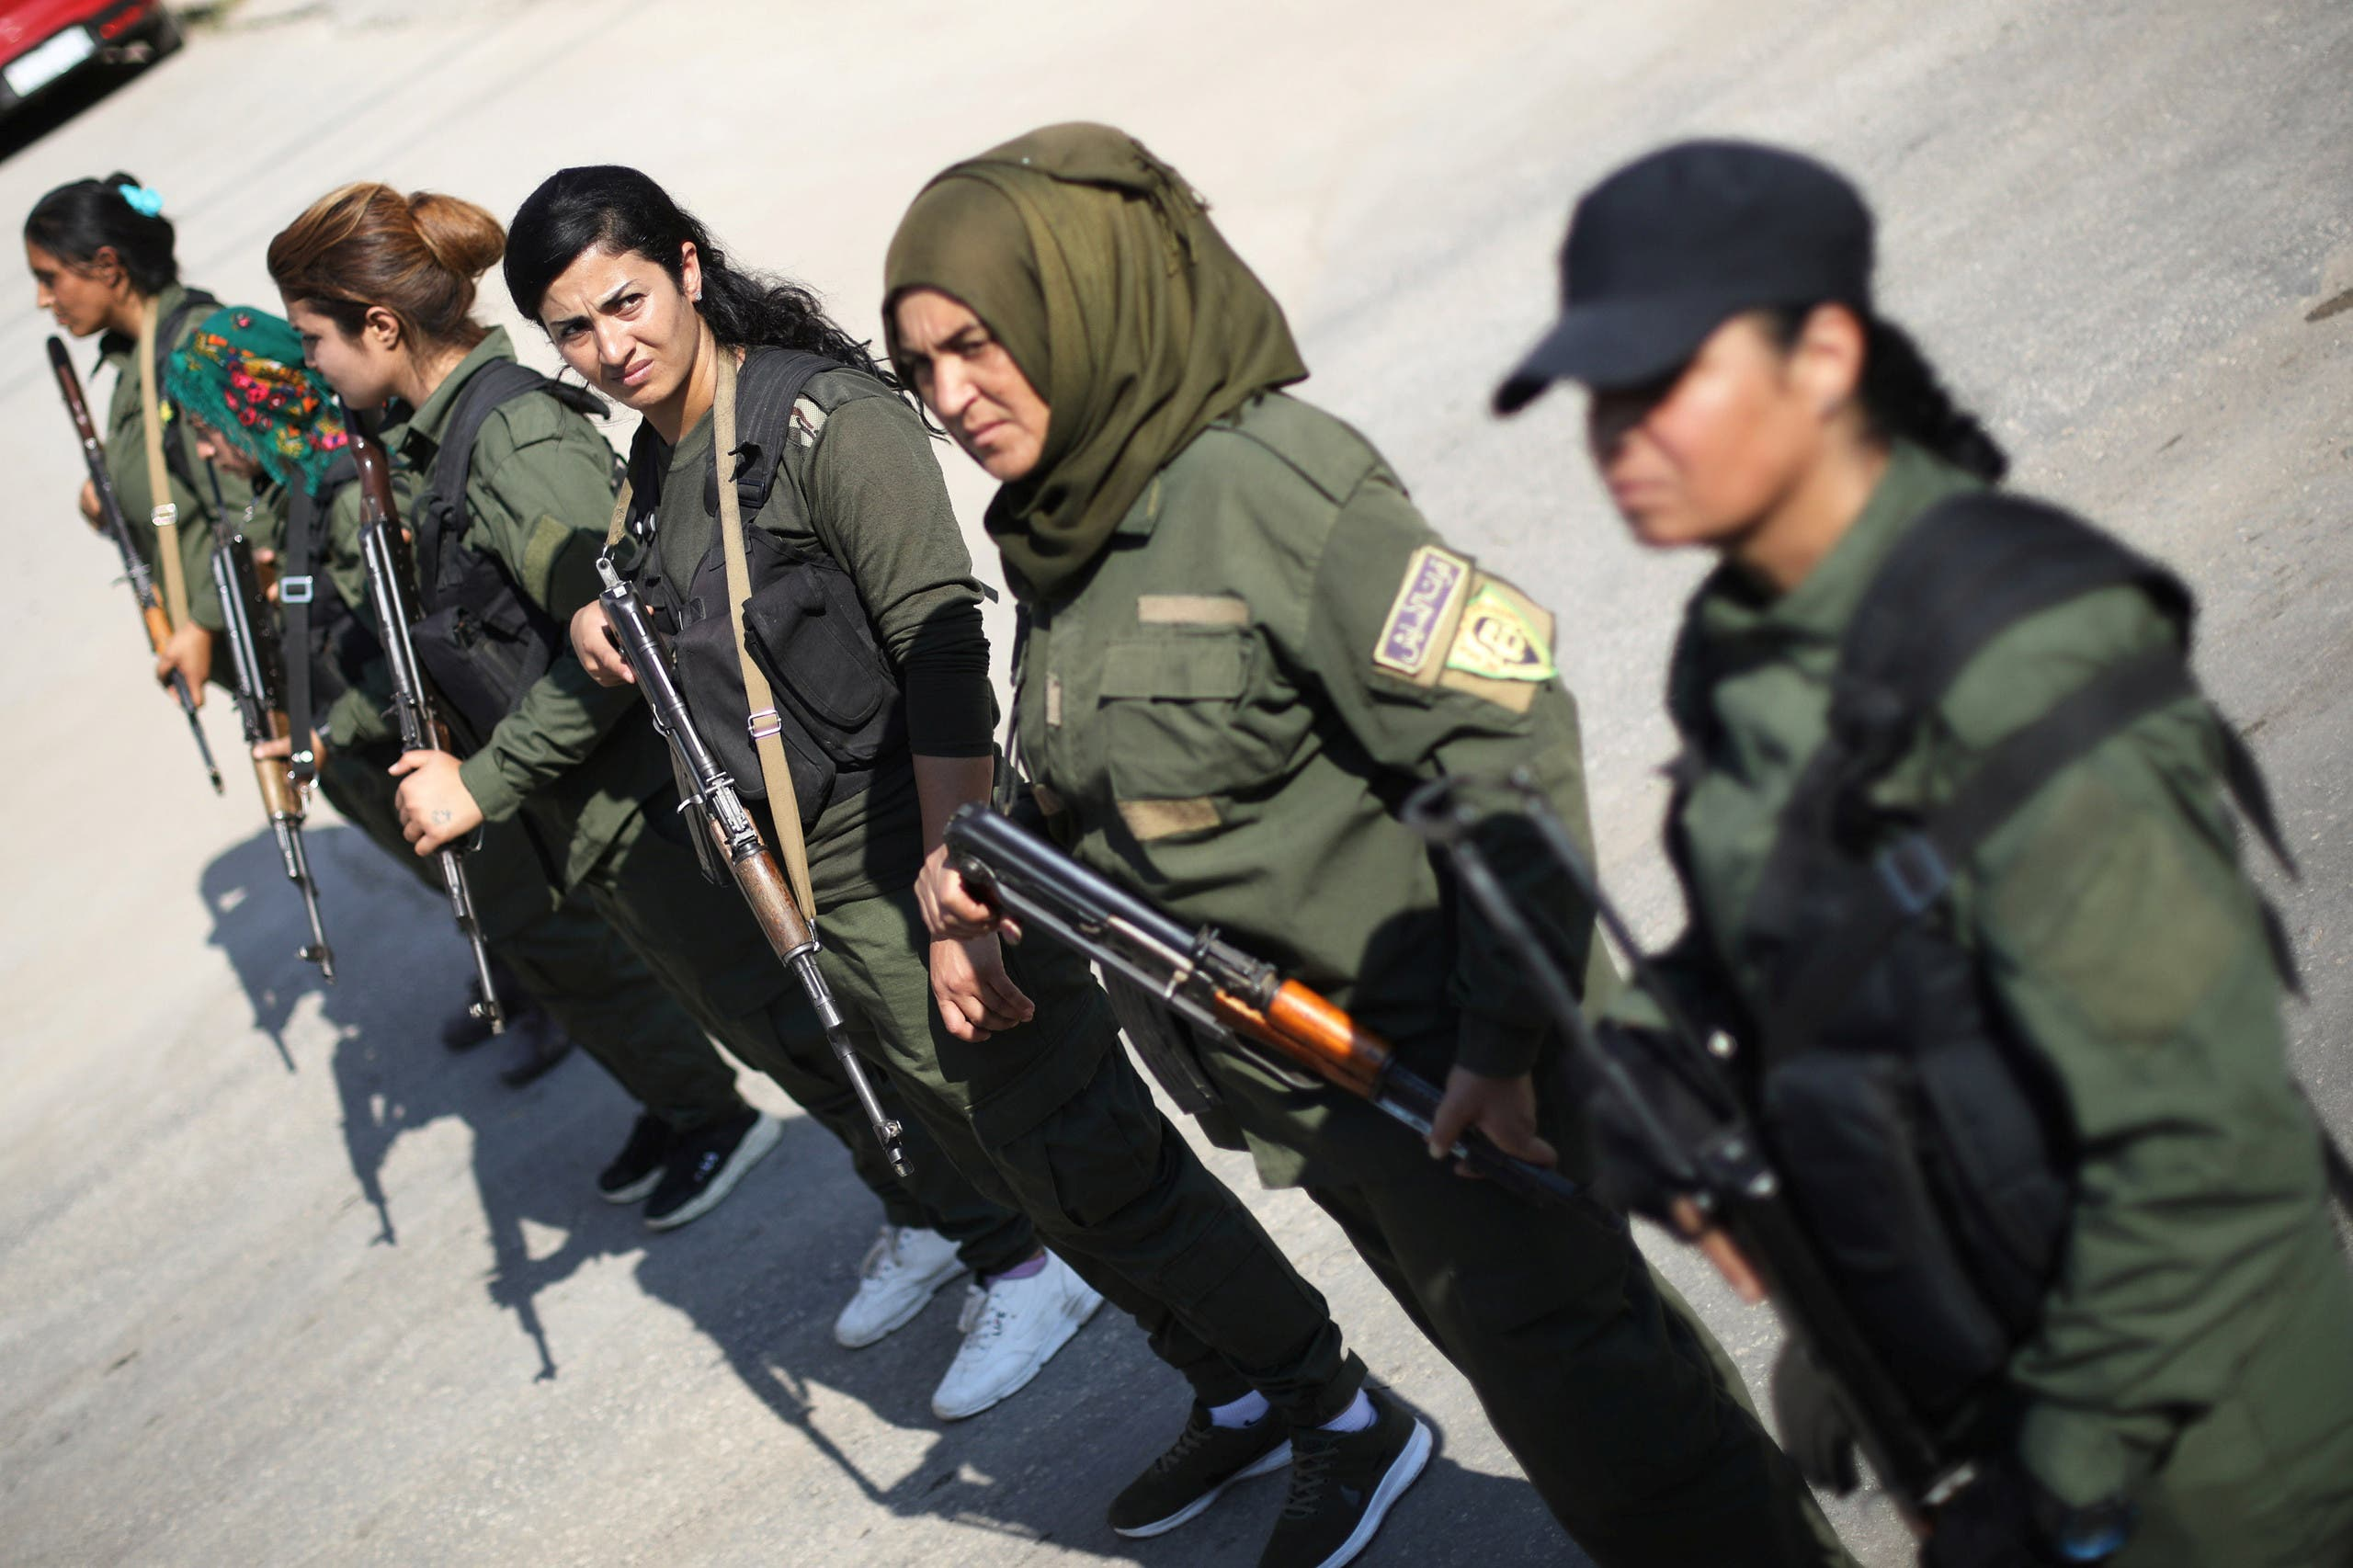 Kurdish policewomen stand guard as Kurdish and Arab protesters take part in a march against Turkish President and walk to the United Nations Headquarters in the town of Qamishli, Syria October 23, 2019. (Reuters)